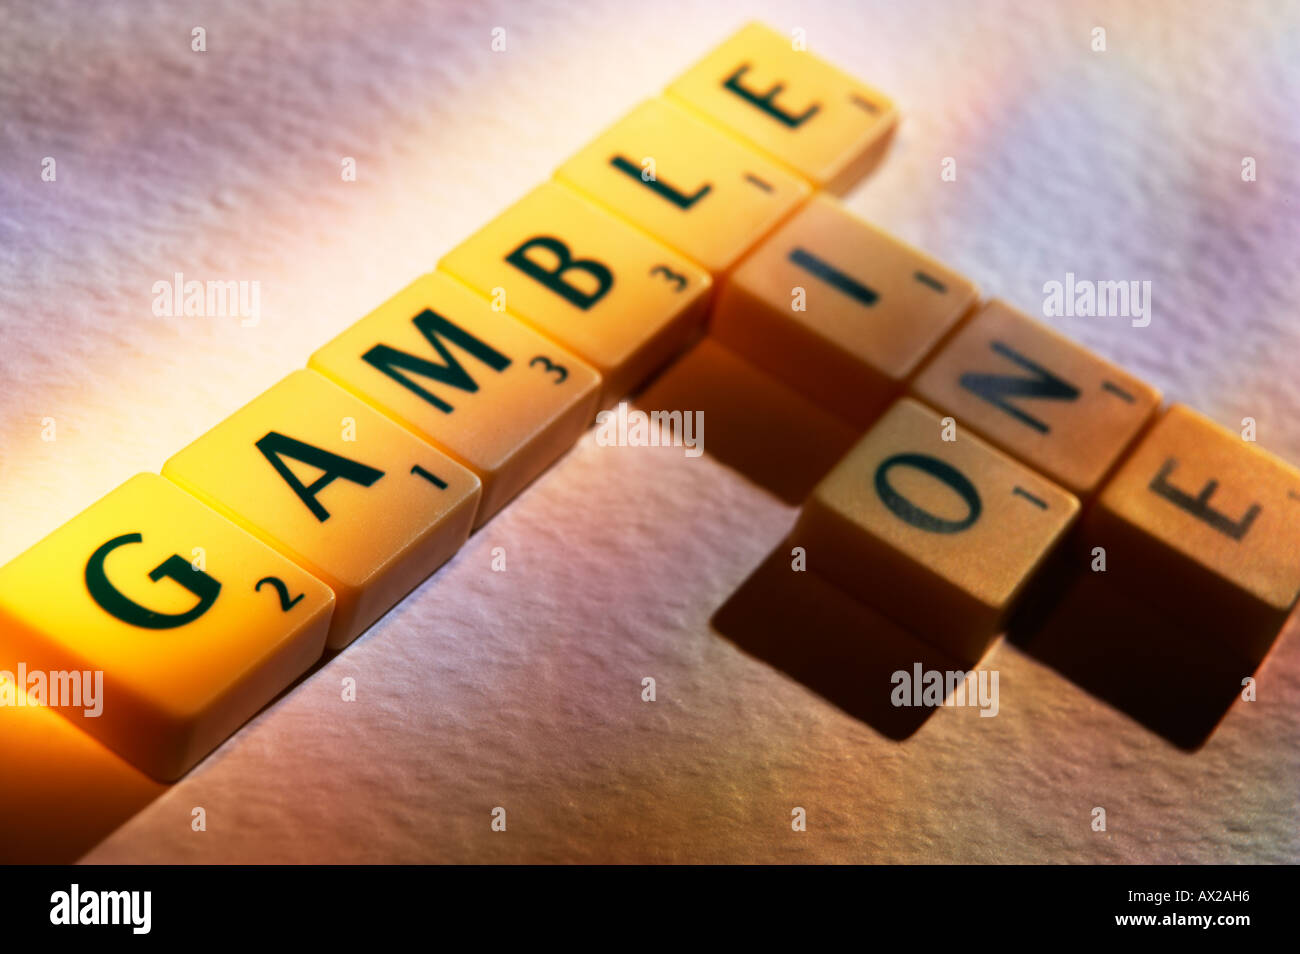 Worksheet Spelling On Line scrabble board game letters spelling on line gamble stock photo gamble